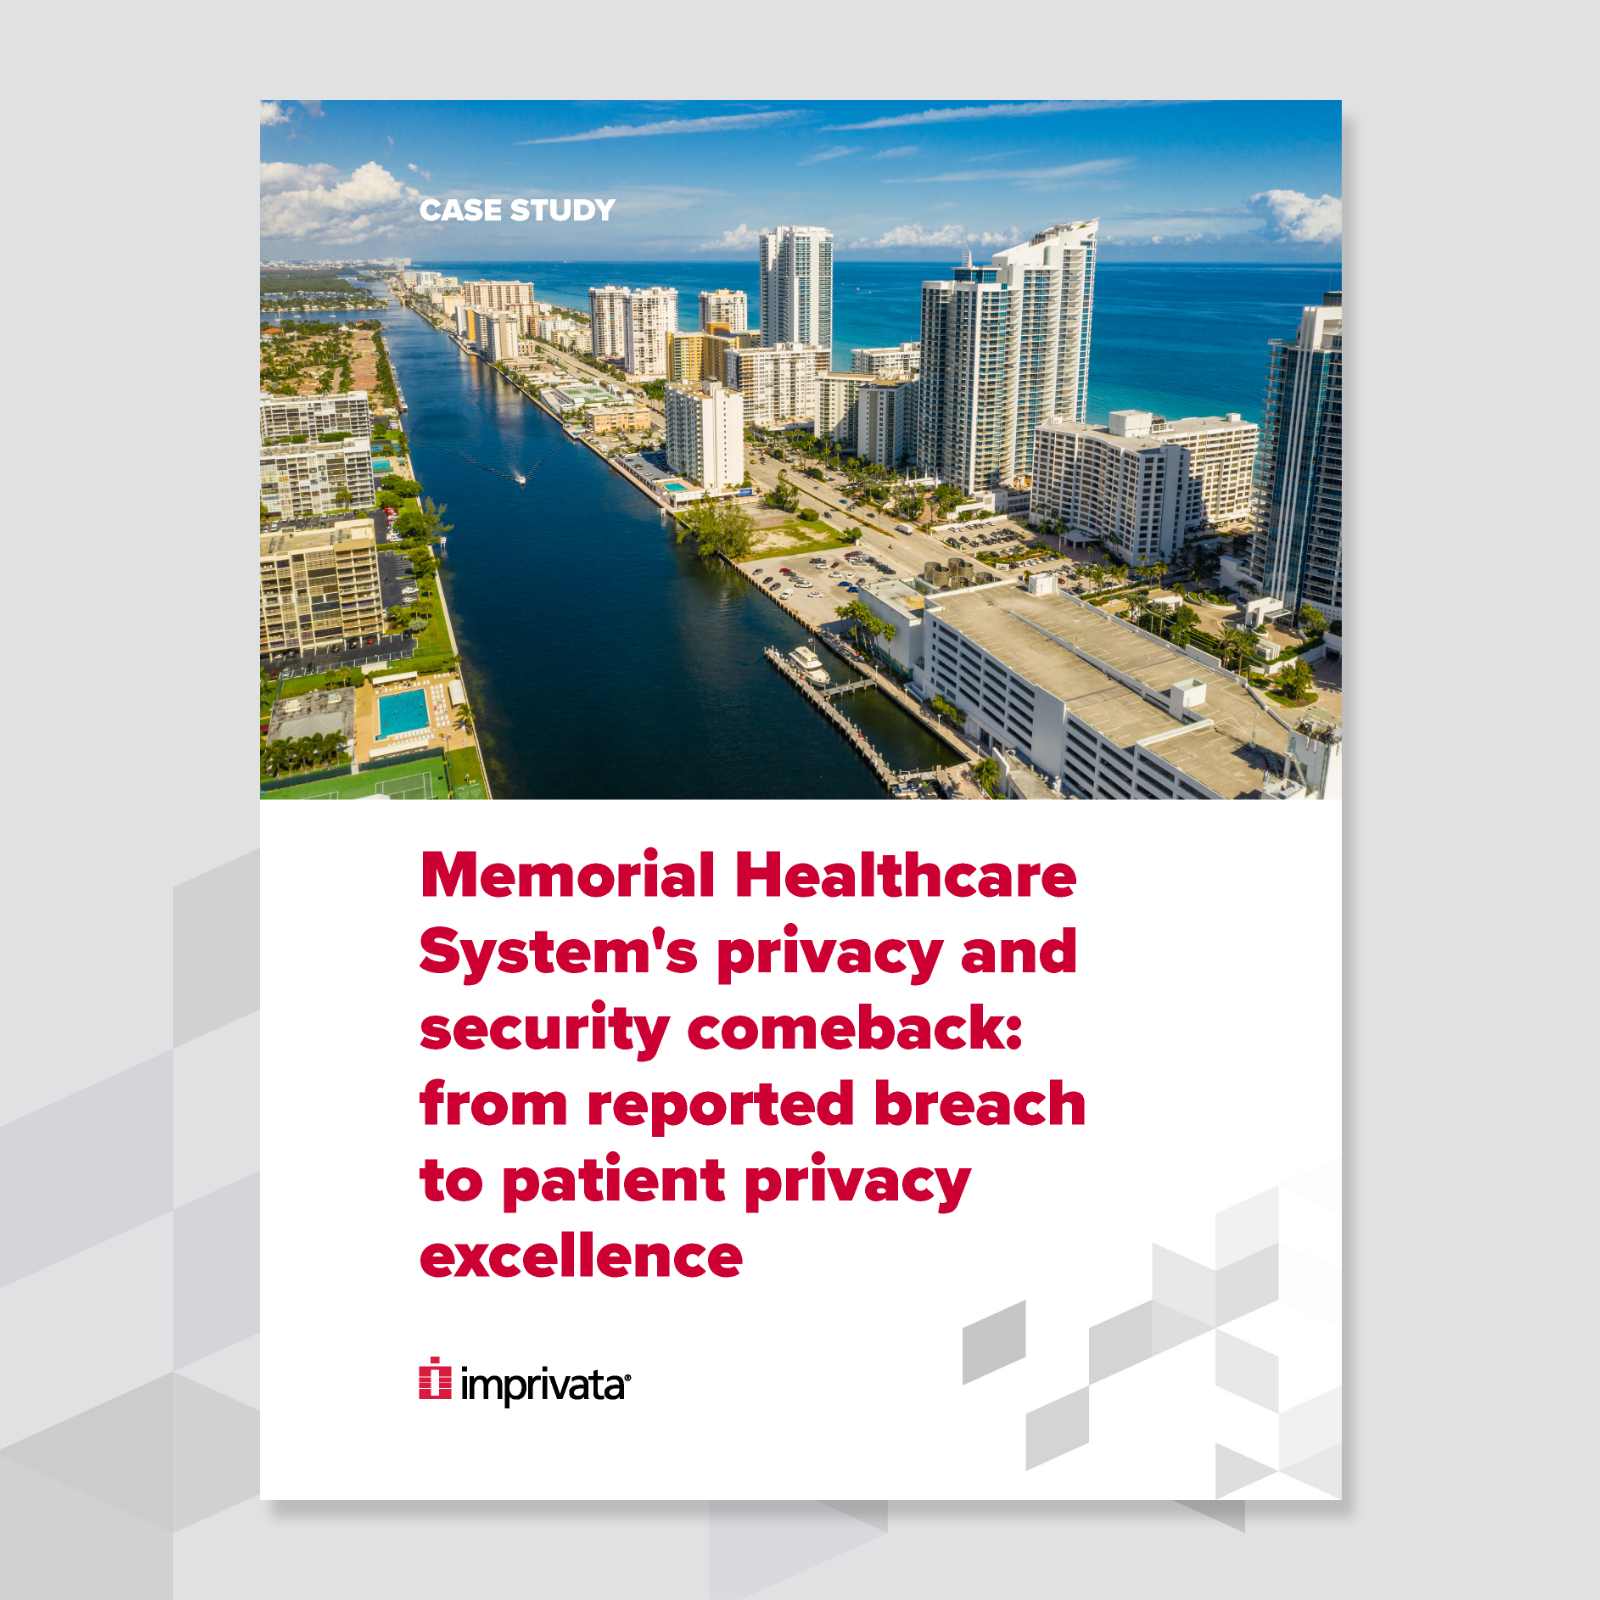 Memorial Healthcare System case study cover